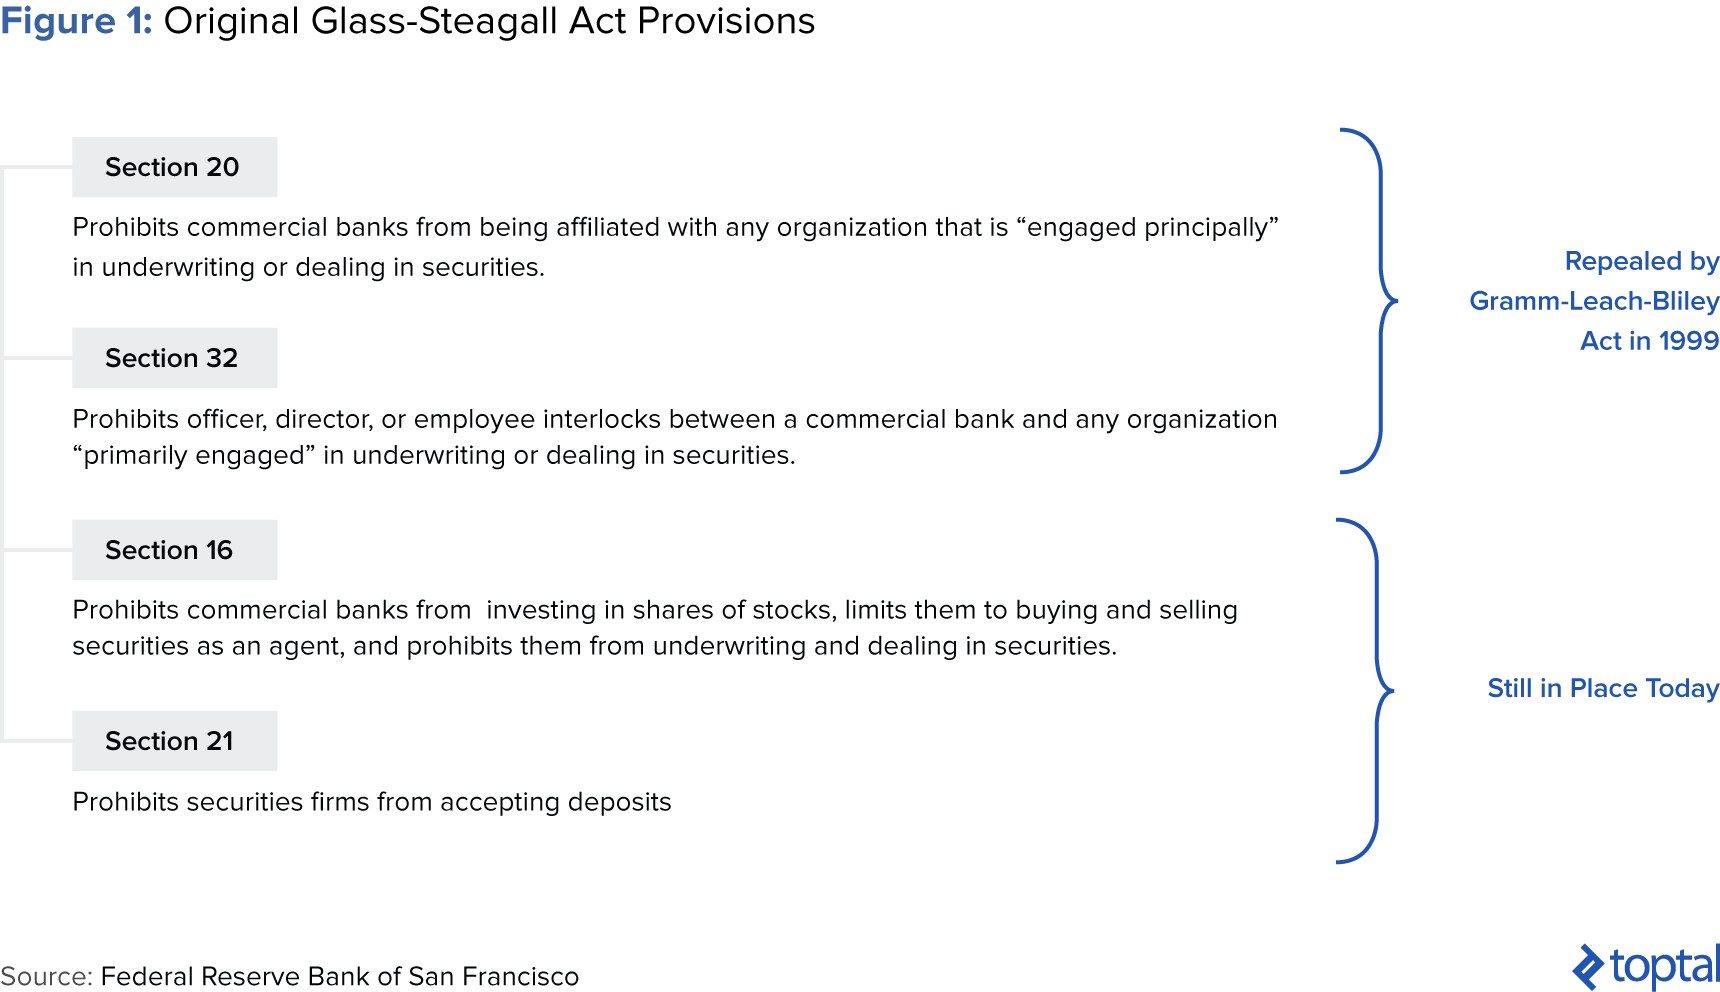 Figure 1: Original Glass-Steagall Act Provisions